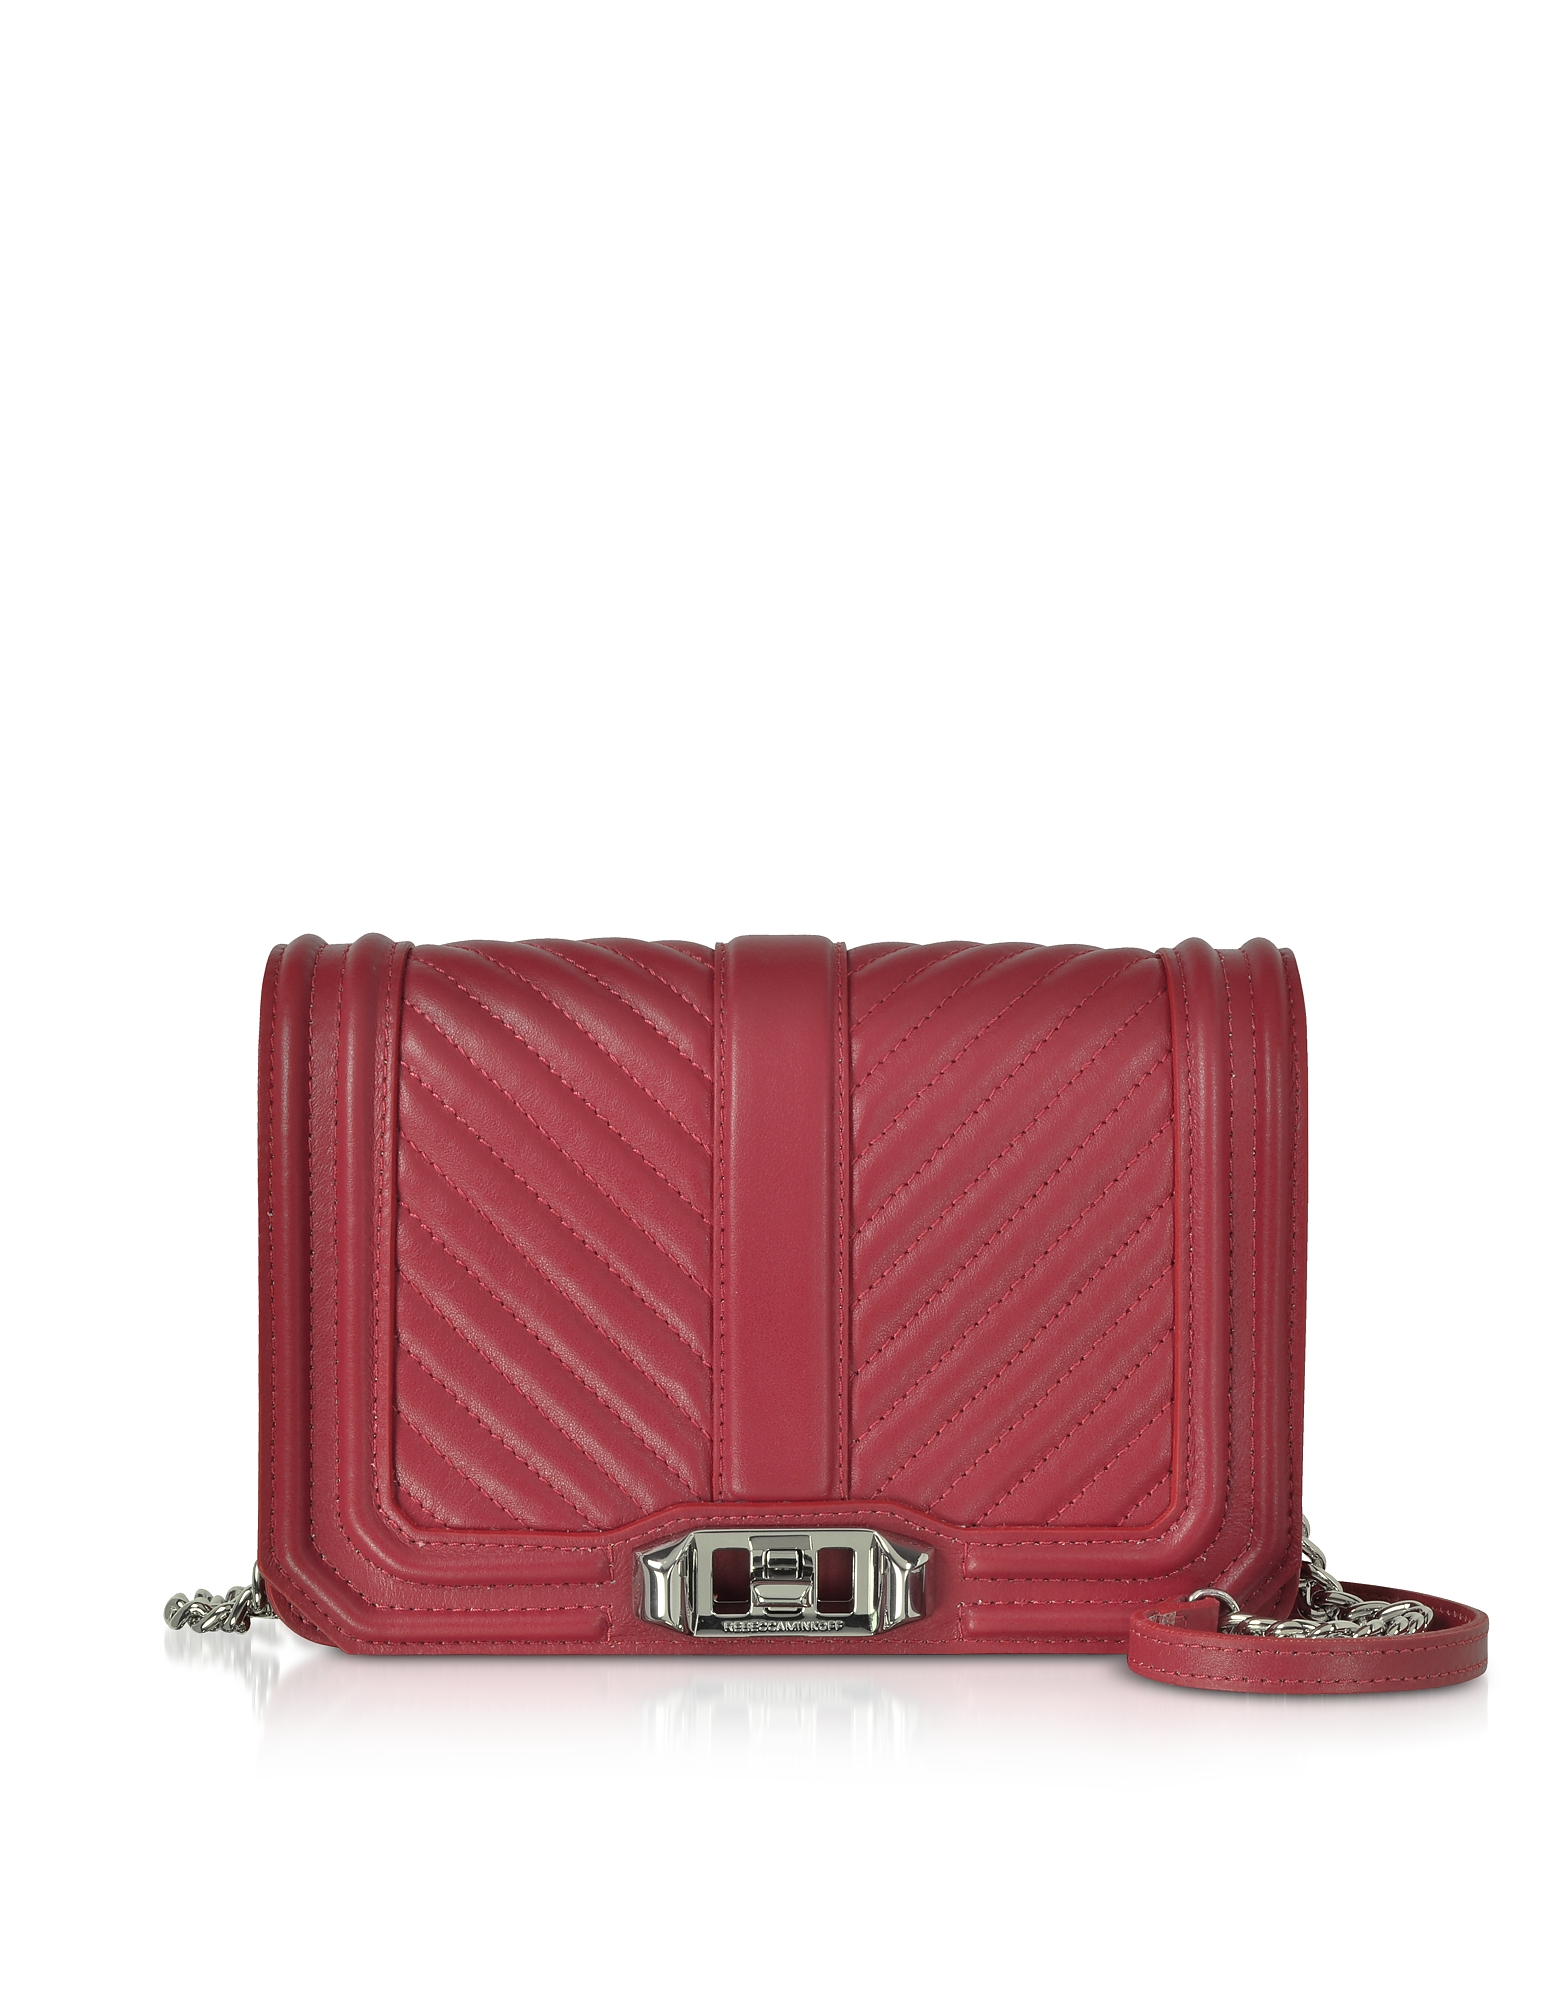 Rebecca Minkoff Handbags, Small Quilted Leather Love Crossbody Bag